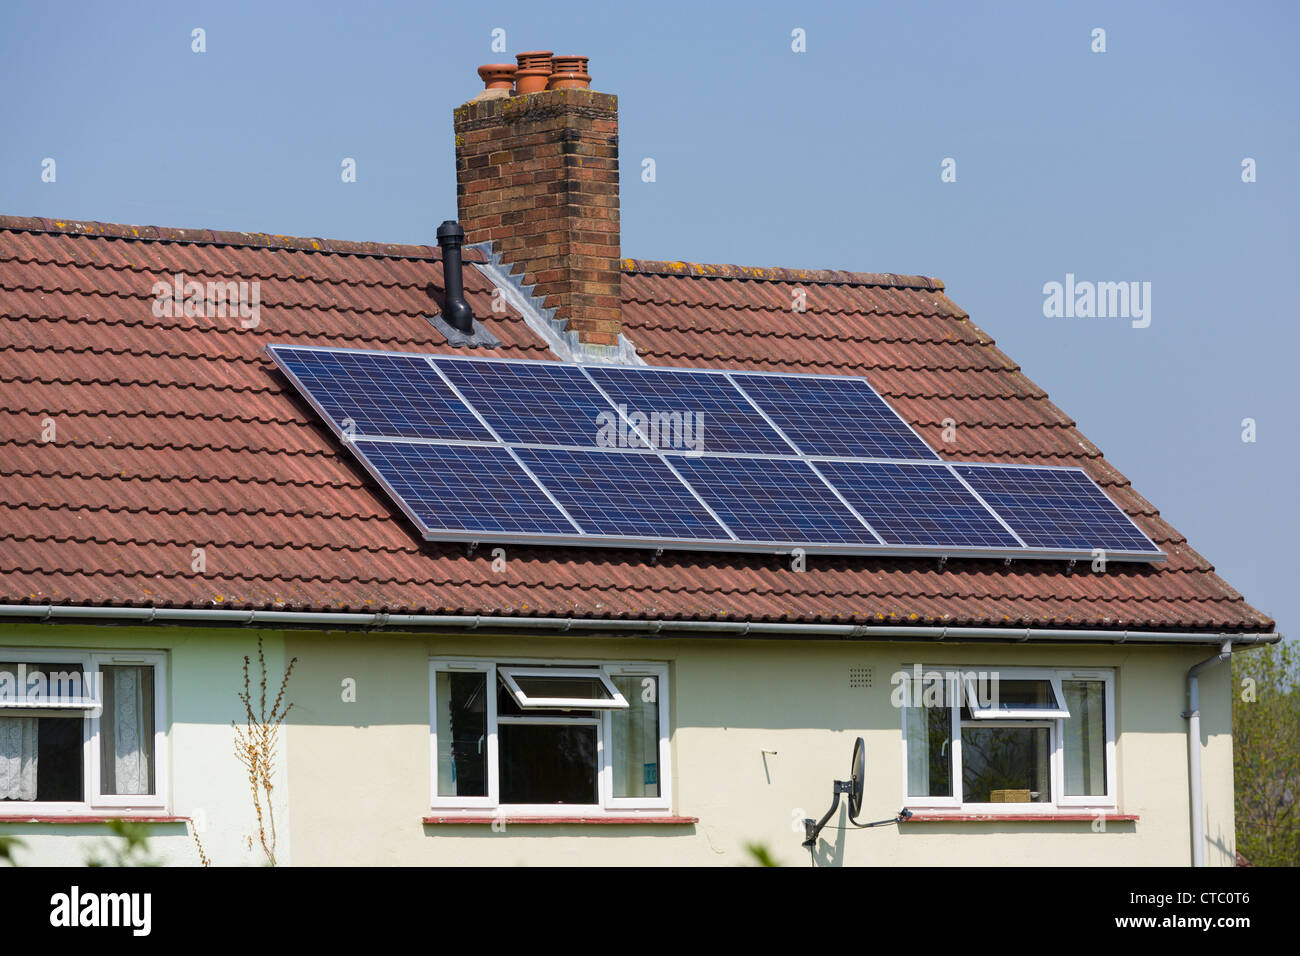 Solar panels, on council house roof - Stock Image